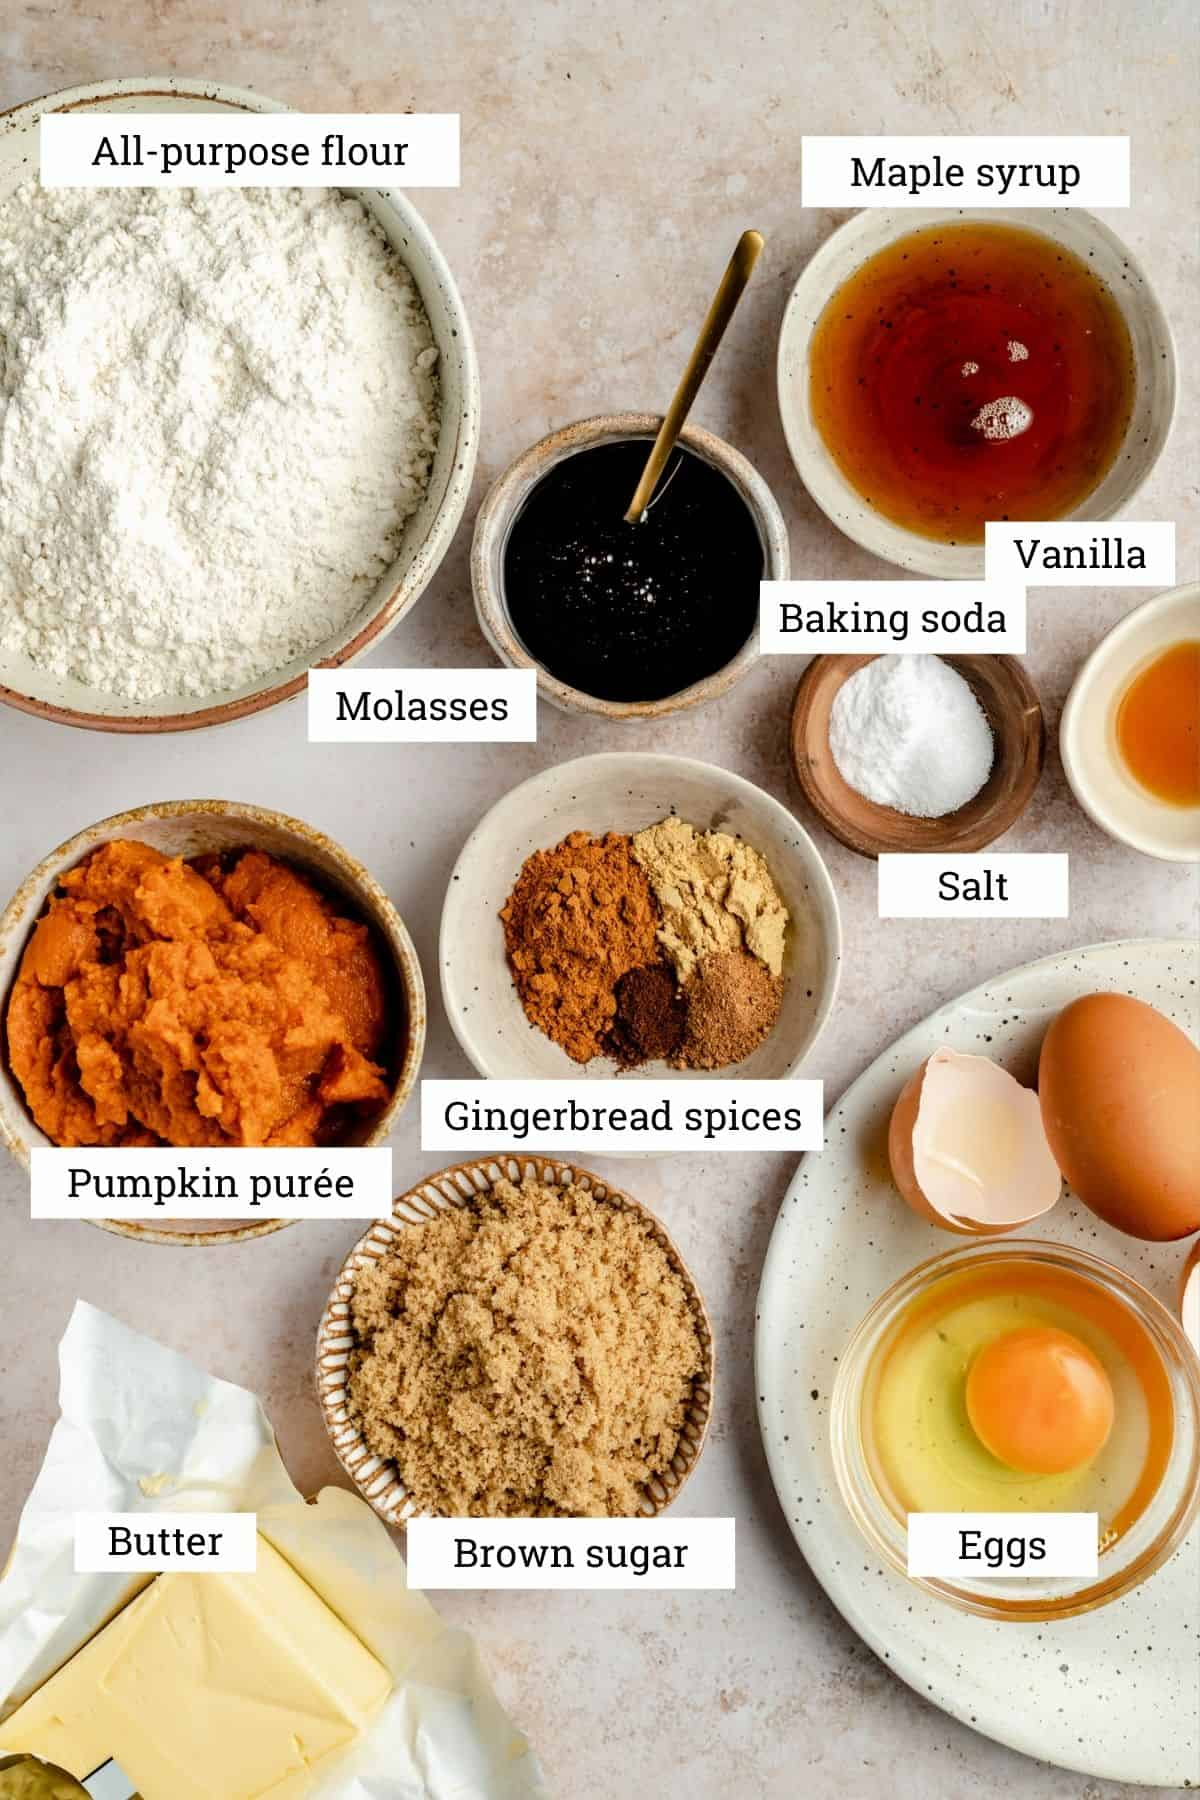 Overhead photo of various bowls of ingredients from the recipe